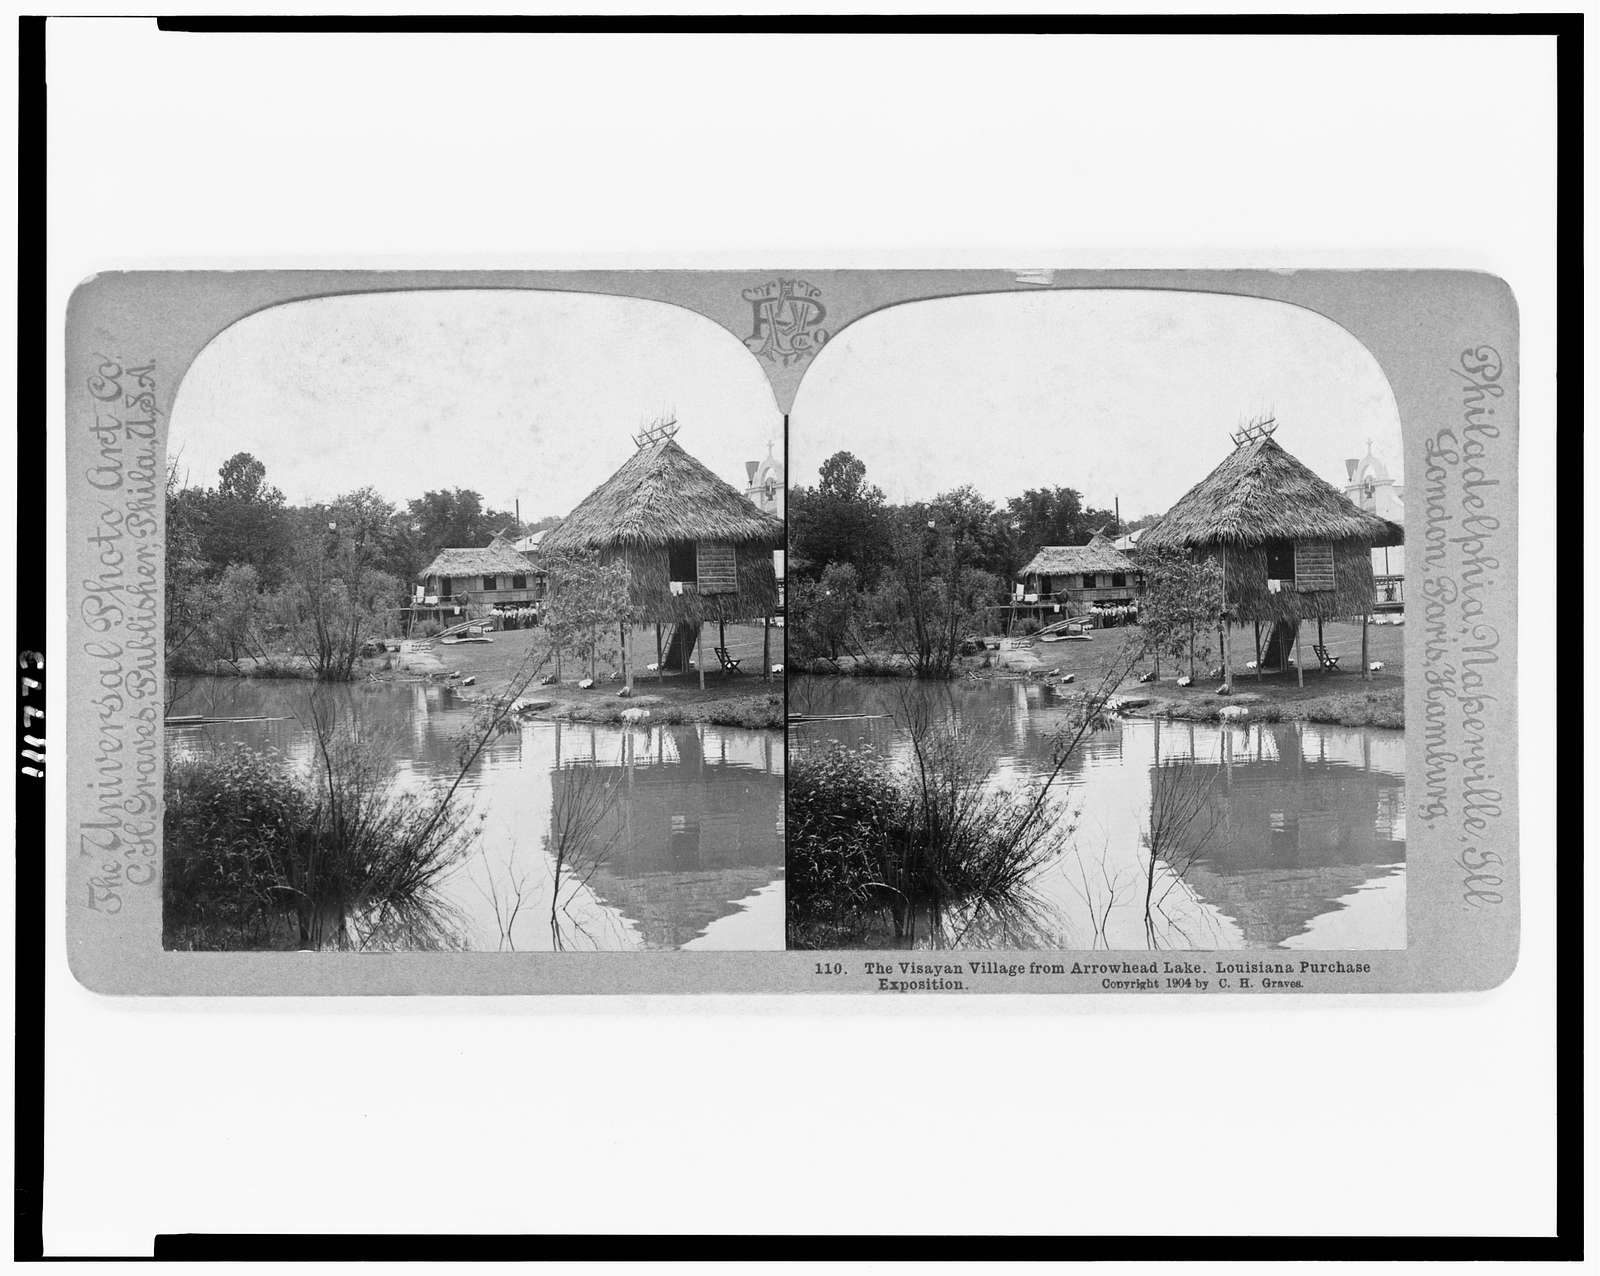 The Visayan village from Arrowhead Lake, Louisiana Purchase Exposition